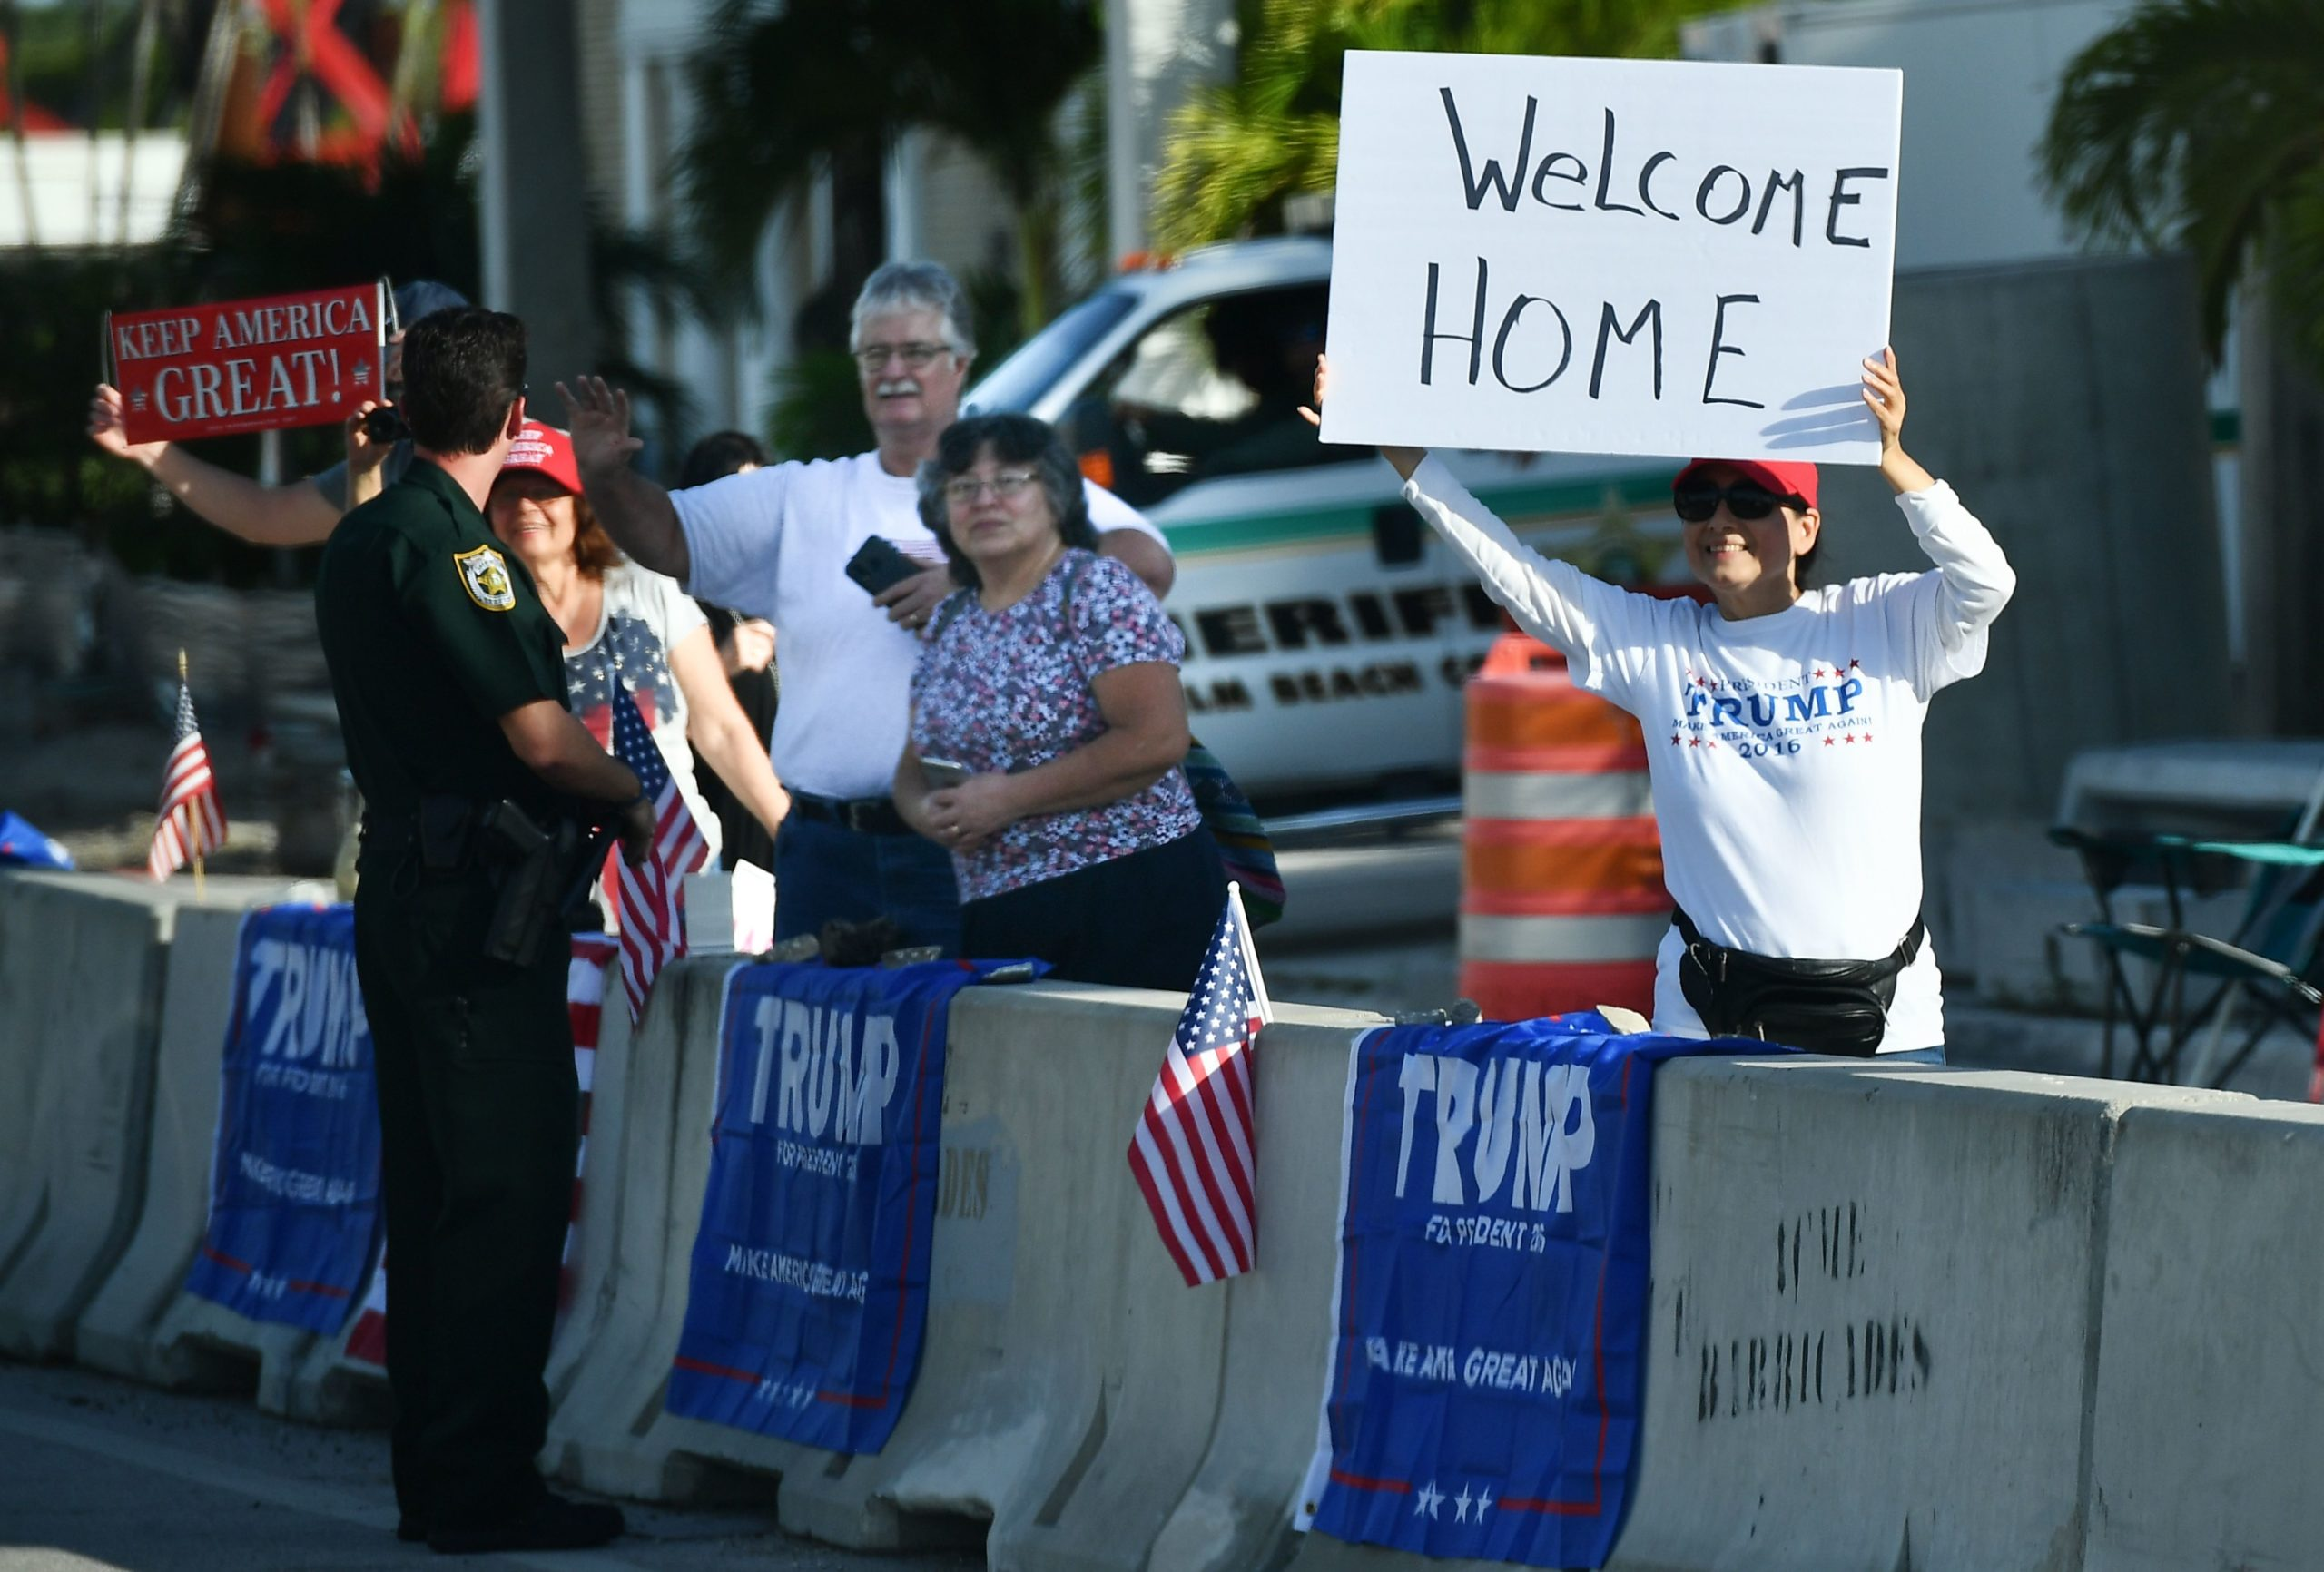 A supporter of US President Donald Trump holds up a placard in West Palm Beach, Florida near his Mar-a-Lago resort on November 27, 2019. (Photo by MANDEL NGAN / AFP) (Photo by MANDEL NGAN/AFP via Getty Images)